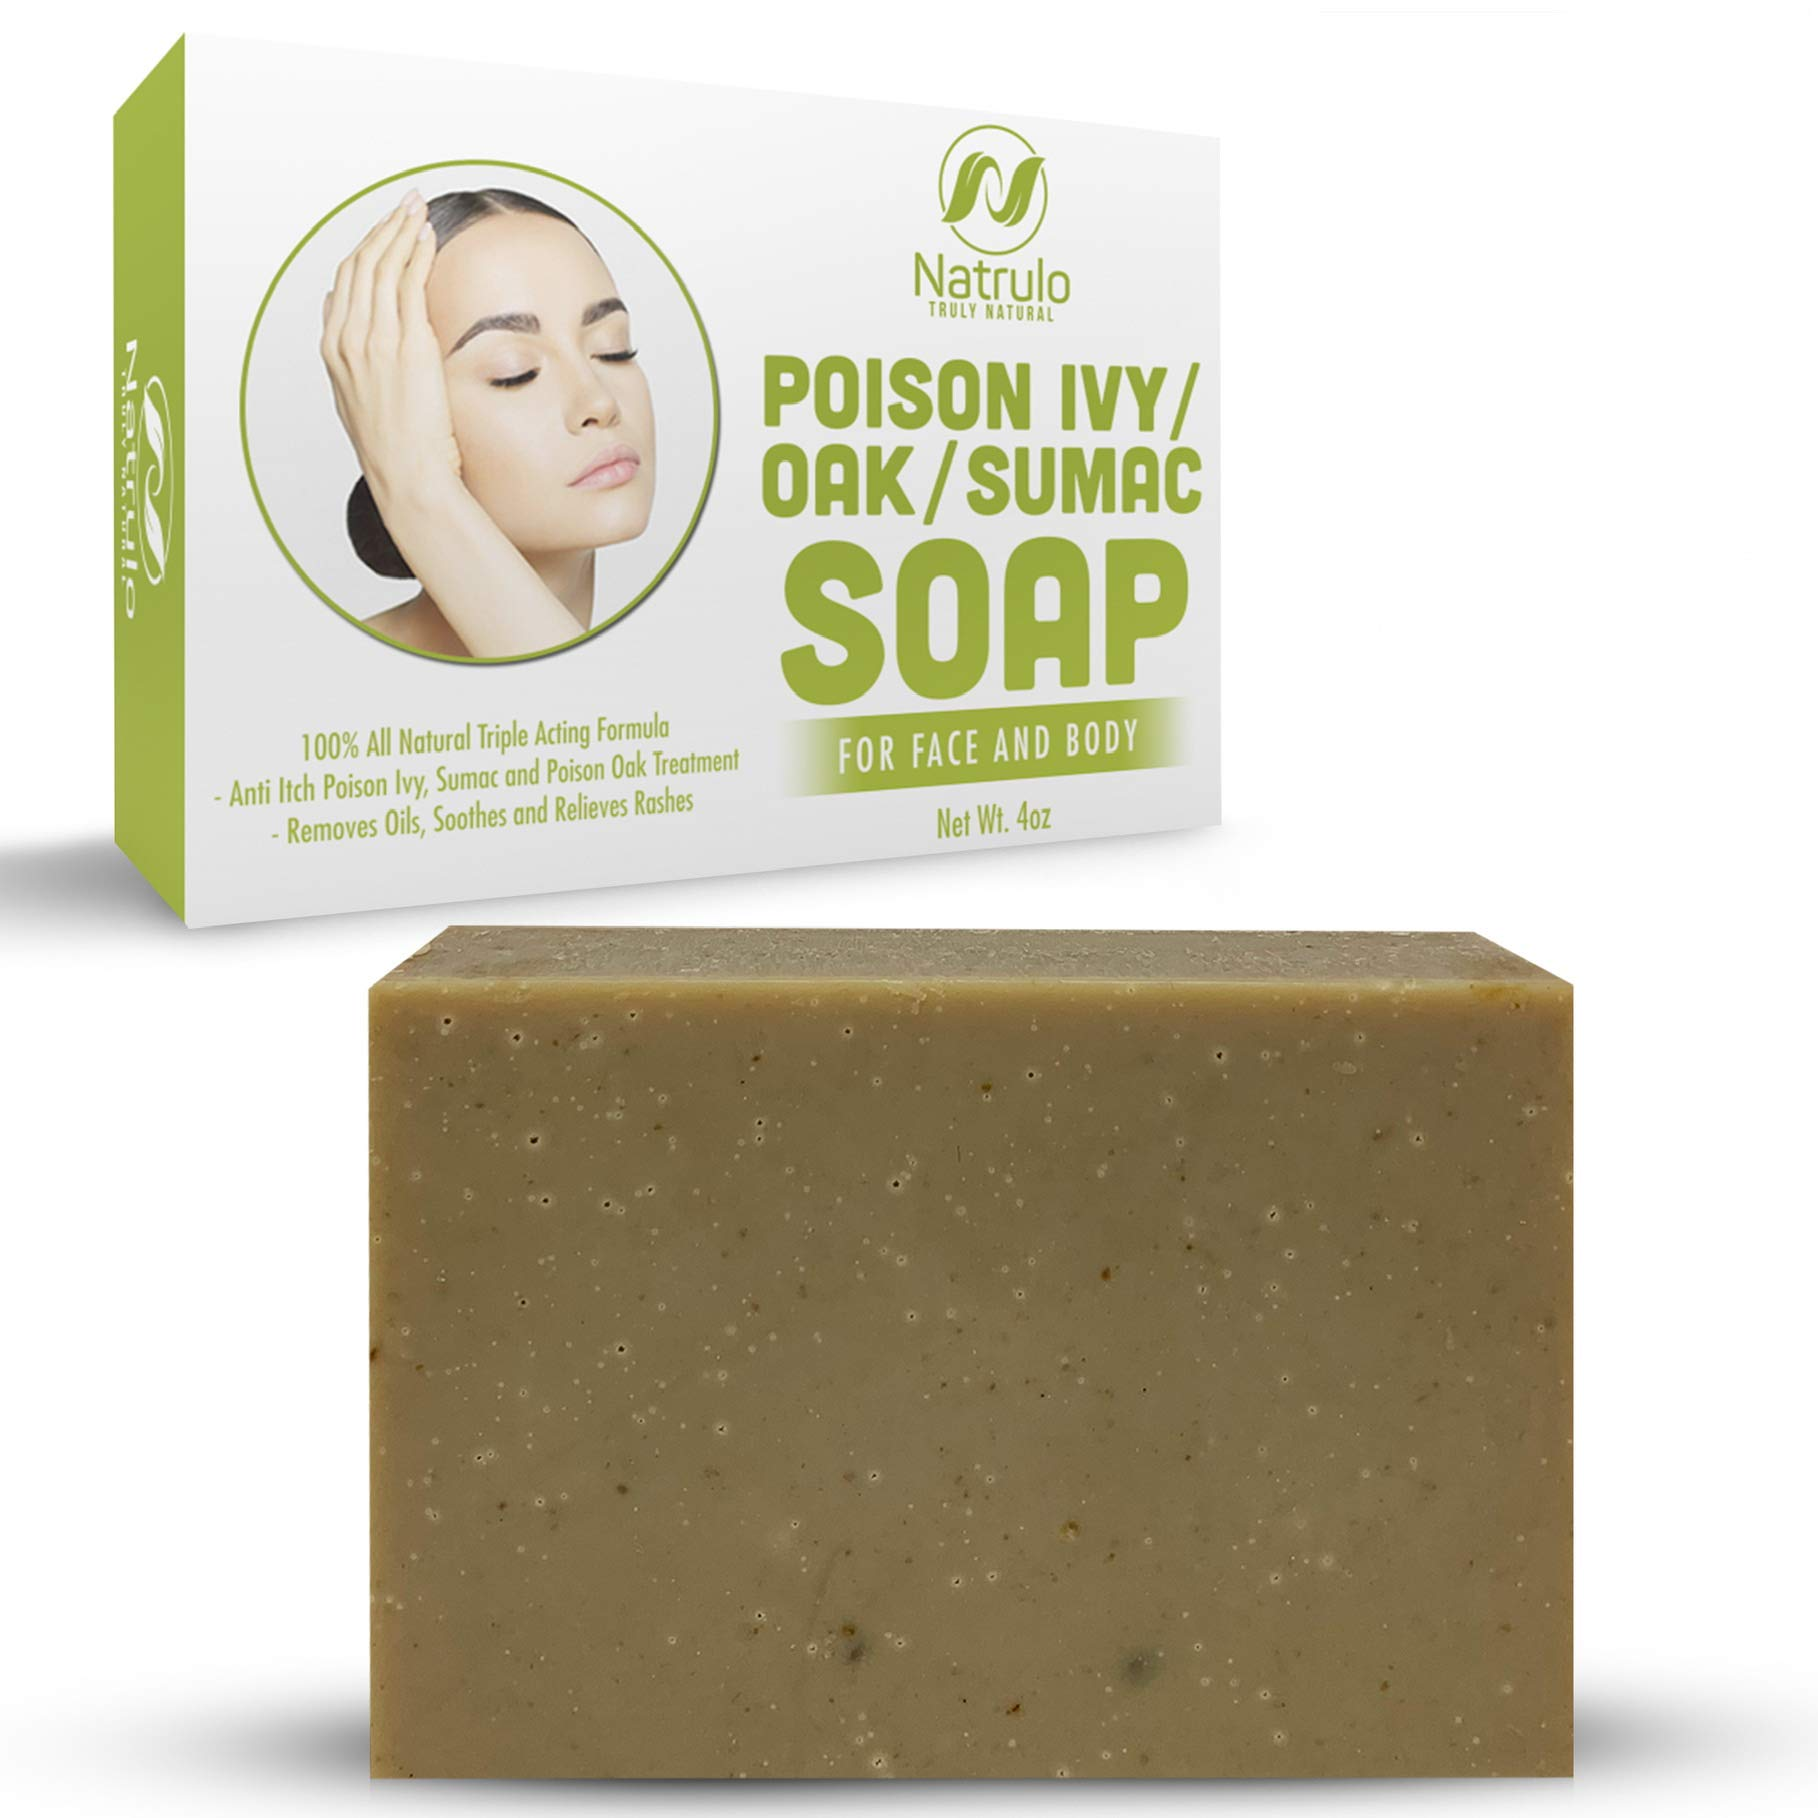 Natrulo Poison Ivy Soap Bar - All Natural Poison